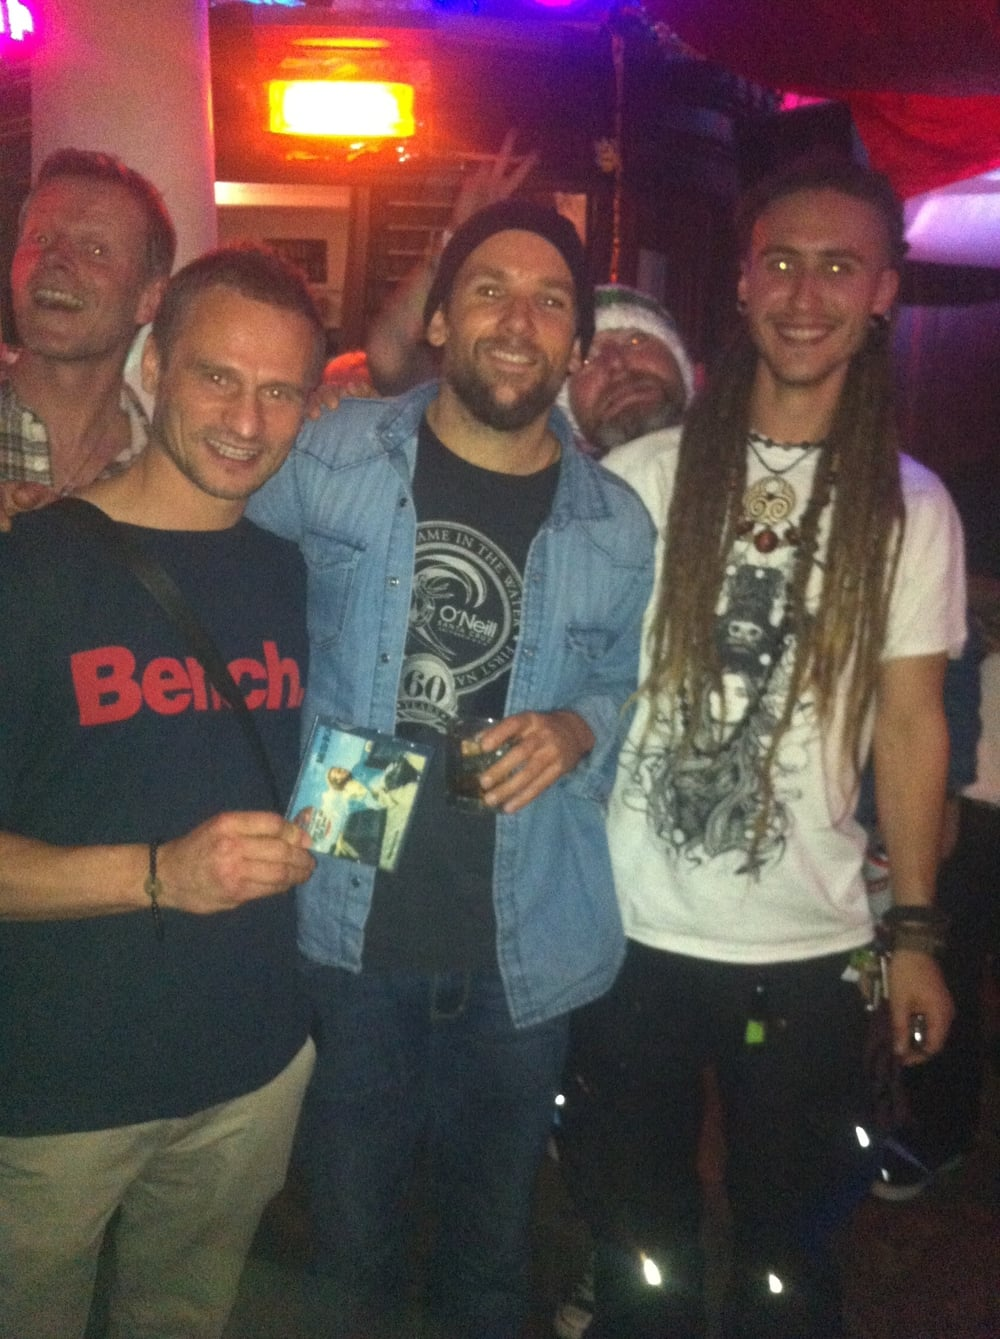 Ecstatic to be asked to perform to play support for one of my favourite music artists MISHKA.  After the show watching  Grammy Wining Artist and USA Billboard Reggae No1 Chart topping artist MISHKA in 2015. Me with MISHKA and a signed copy of  his Album after watching him play an absolutely awesome acoustic set. Nice One M.  We hope you will come back to Bournemouth to bring your beautiful music soulful/reggae vibes.  Check all his brilliant work at www.mishka.com